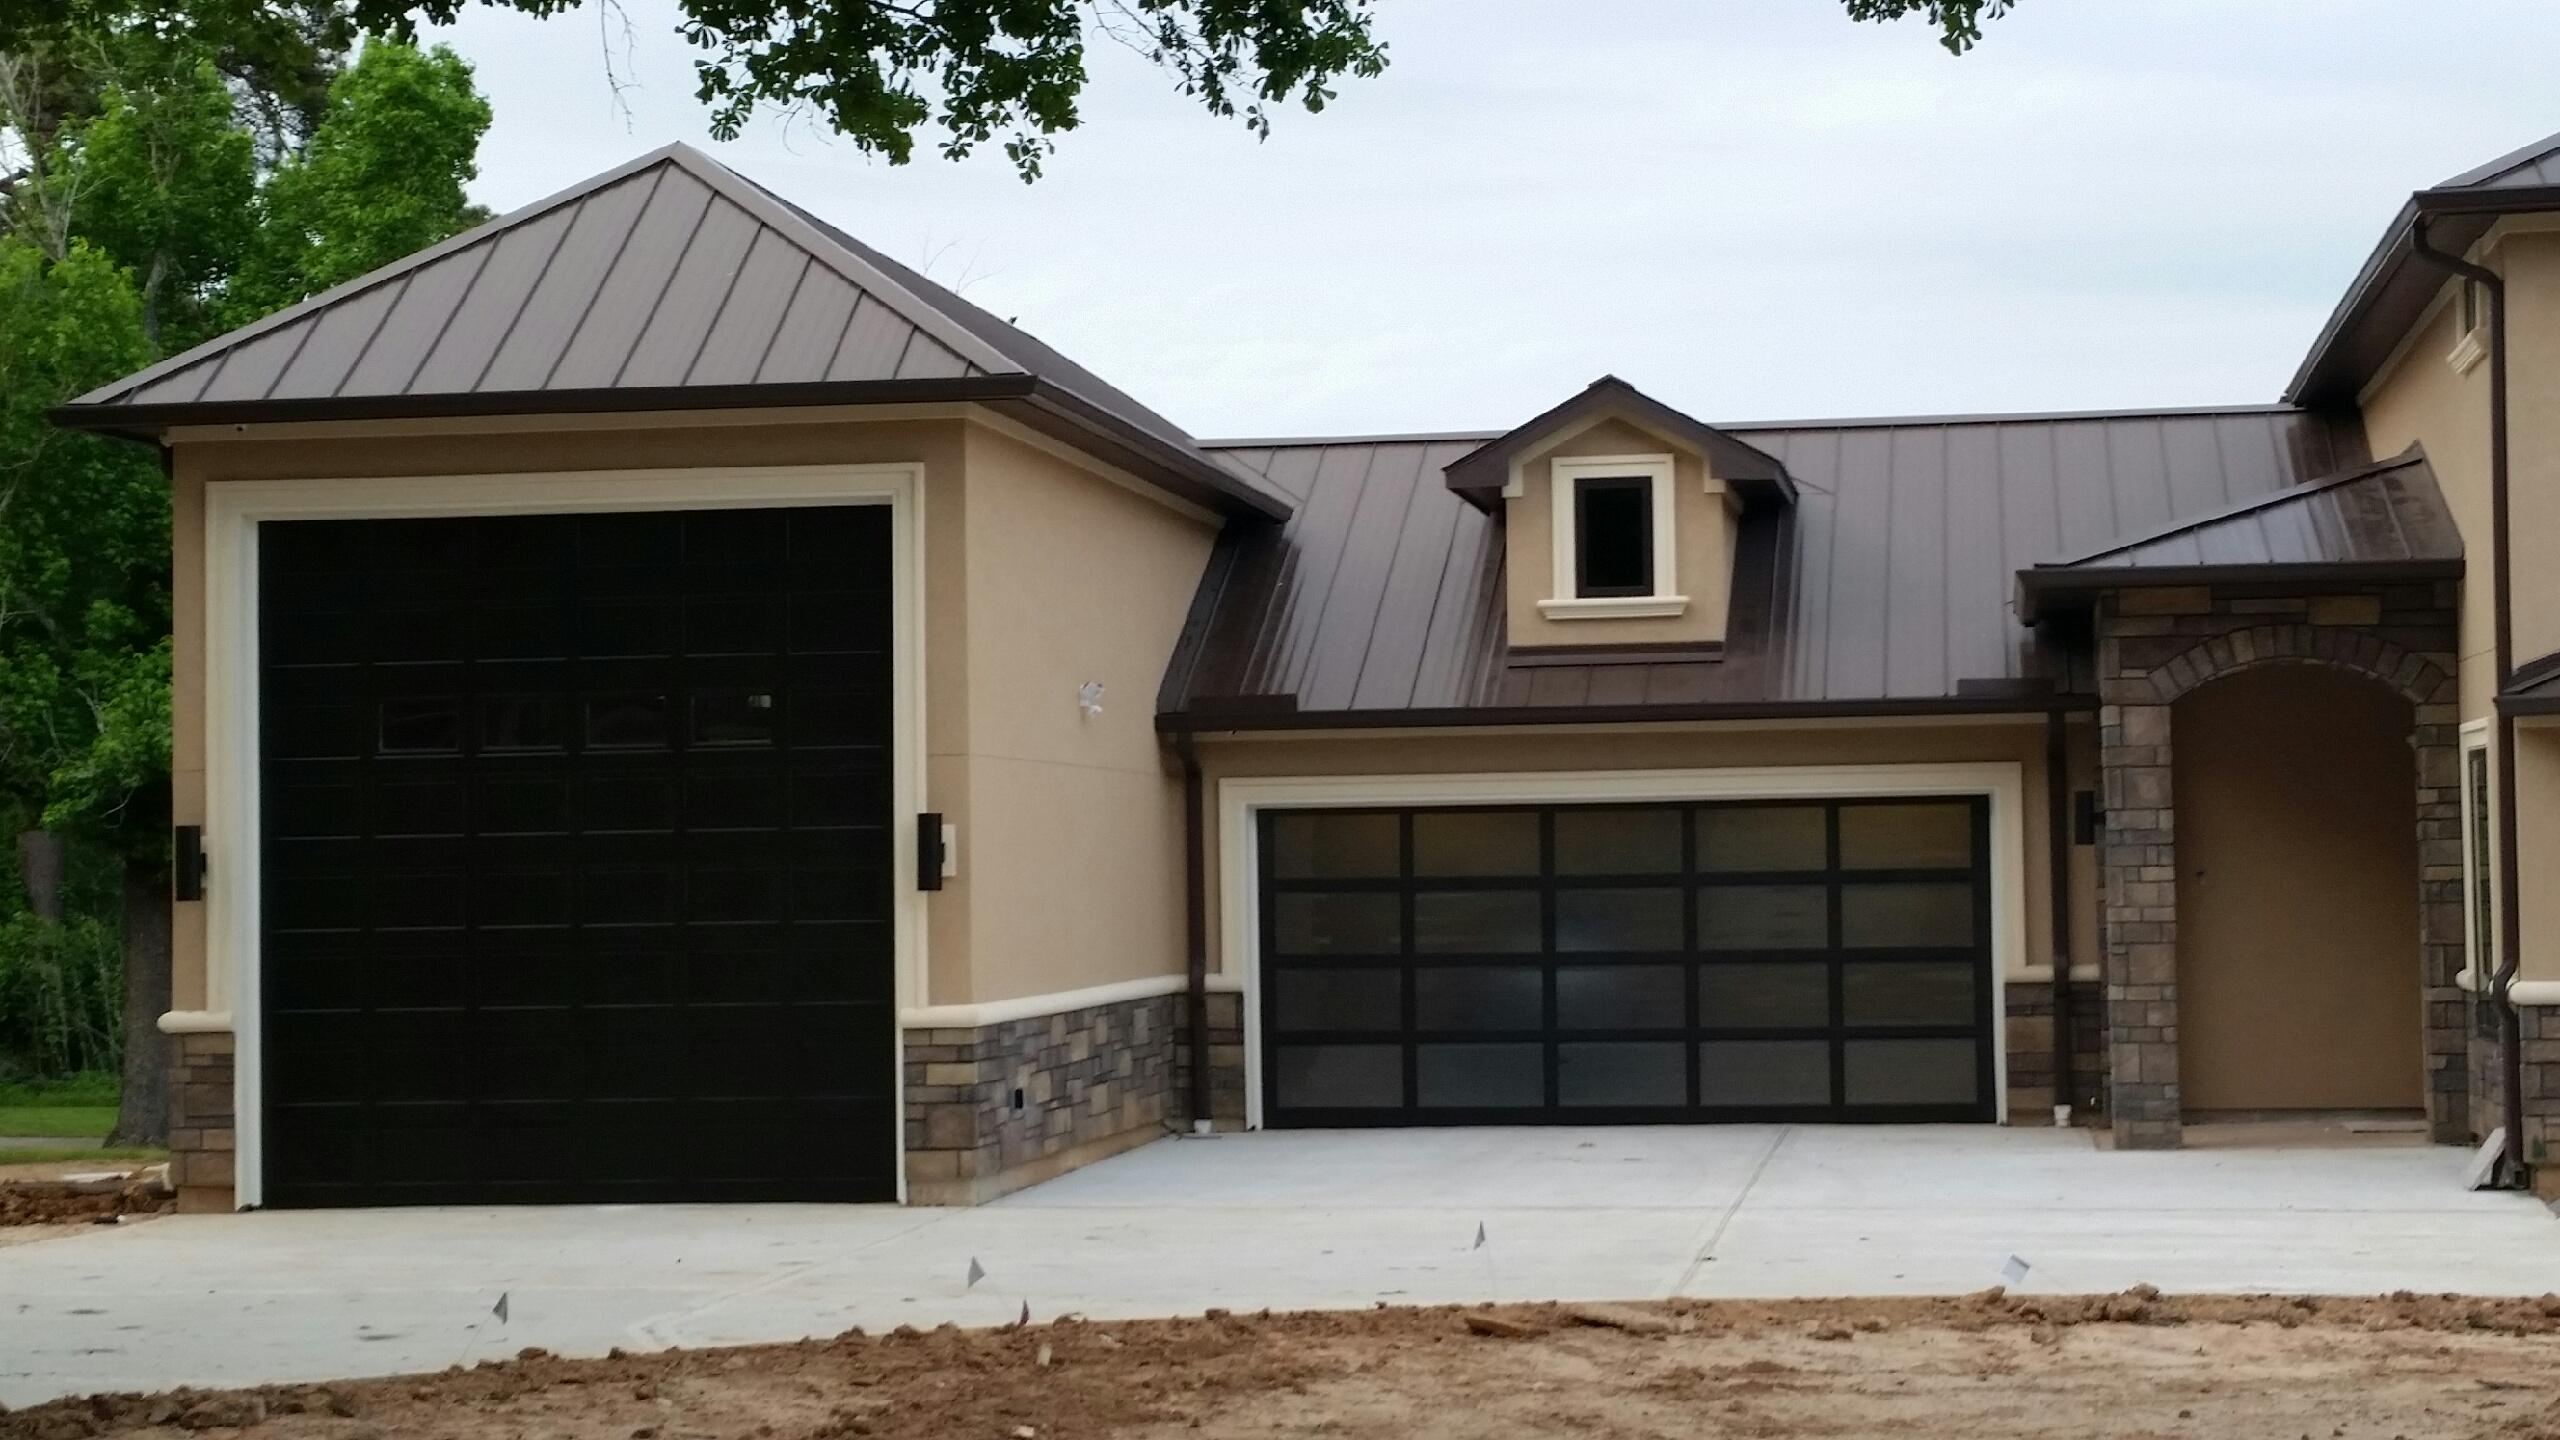 Residential photo gallery ktm door control the best garage contact ktm door control to find the perfect residential garage door for your home whether your building a new home or replacing an old door rubansaba